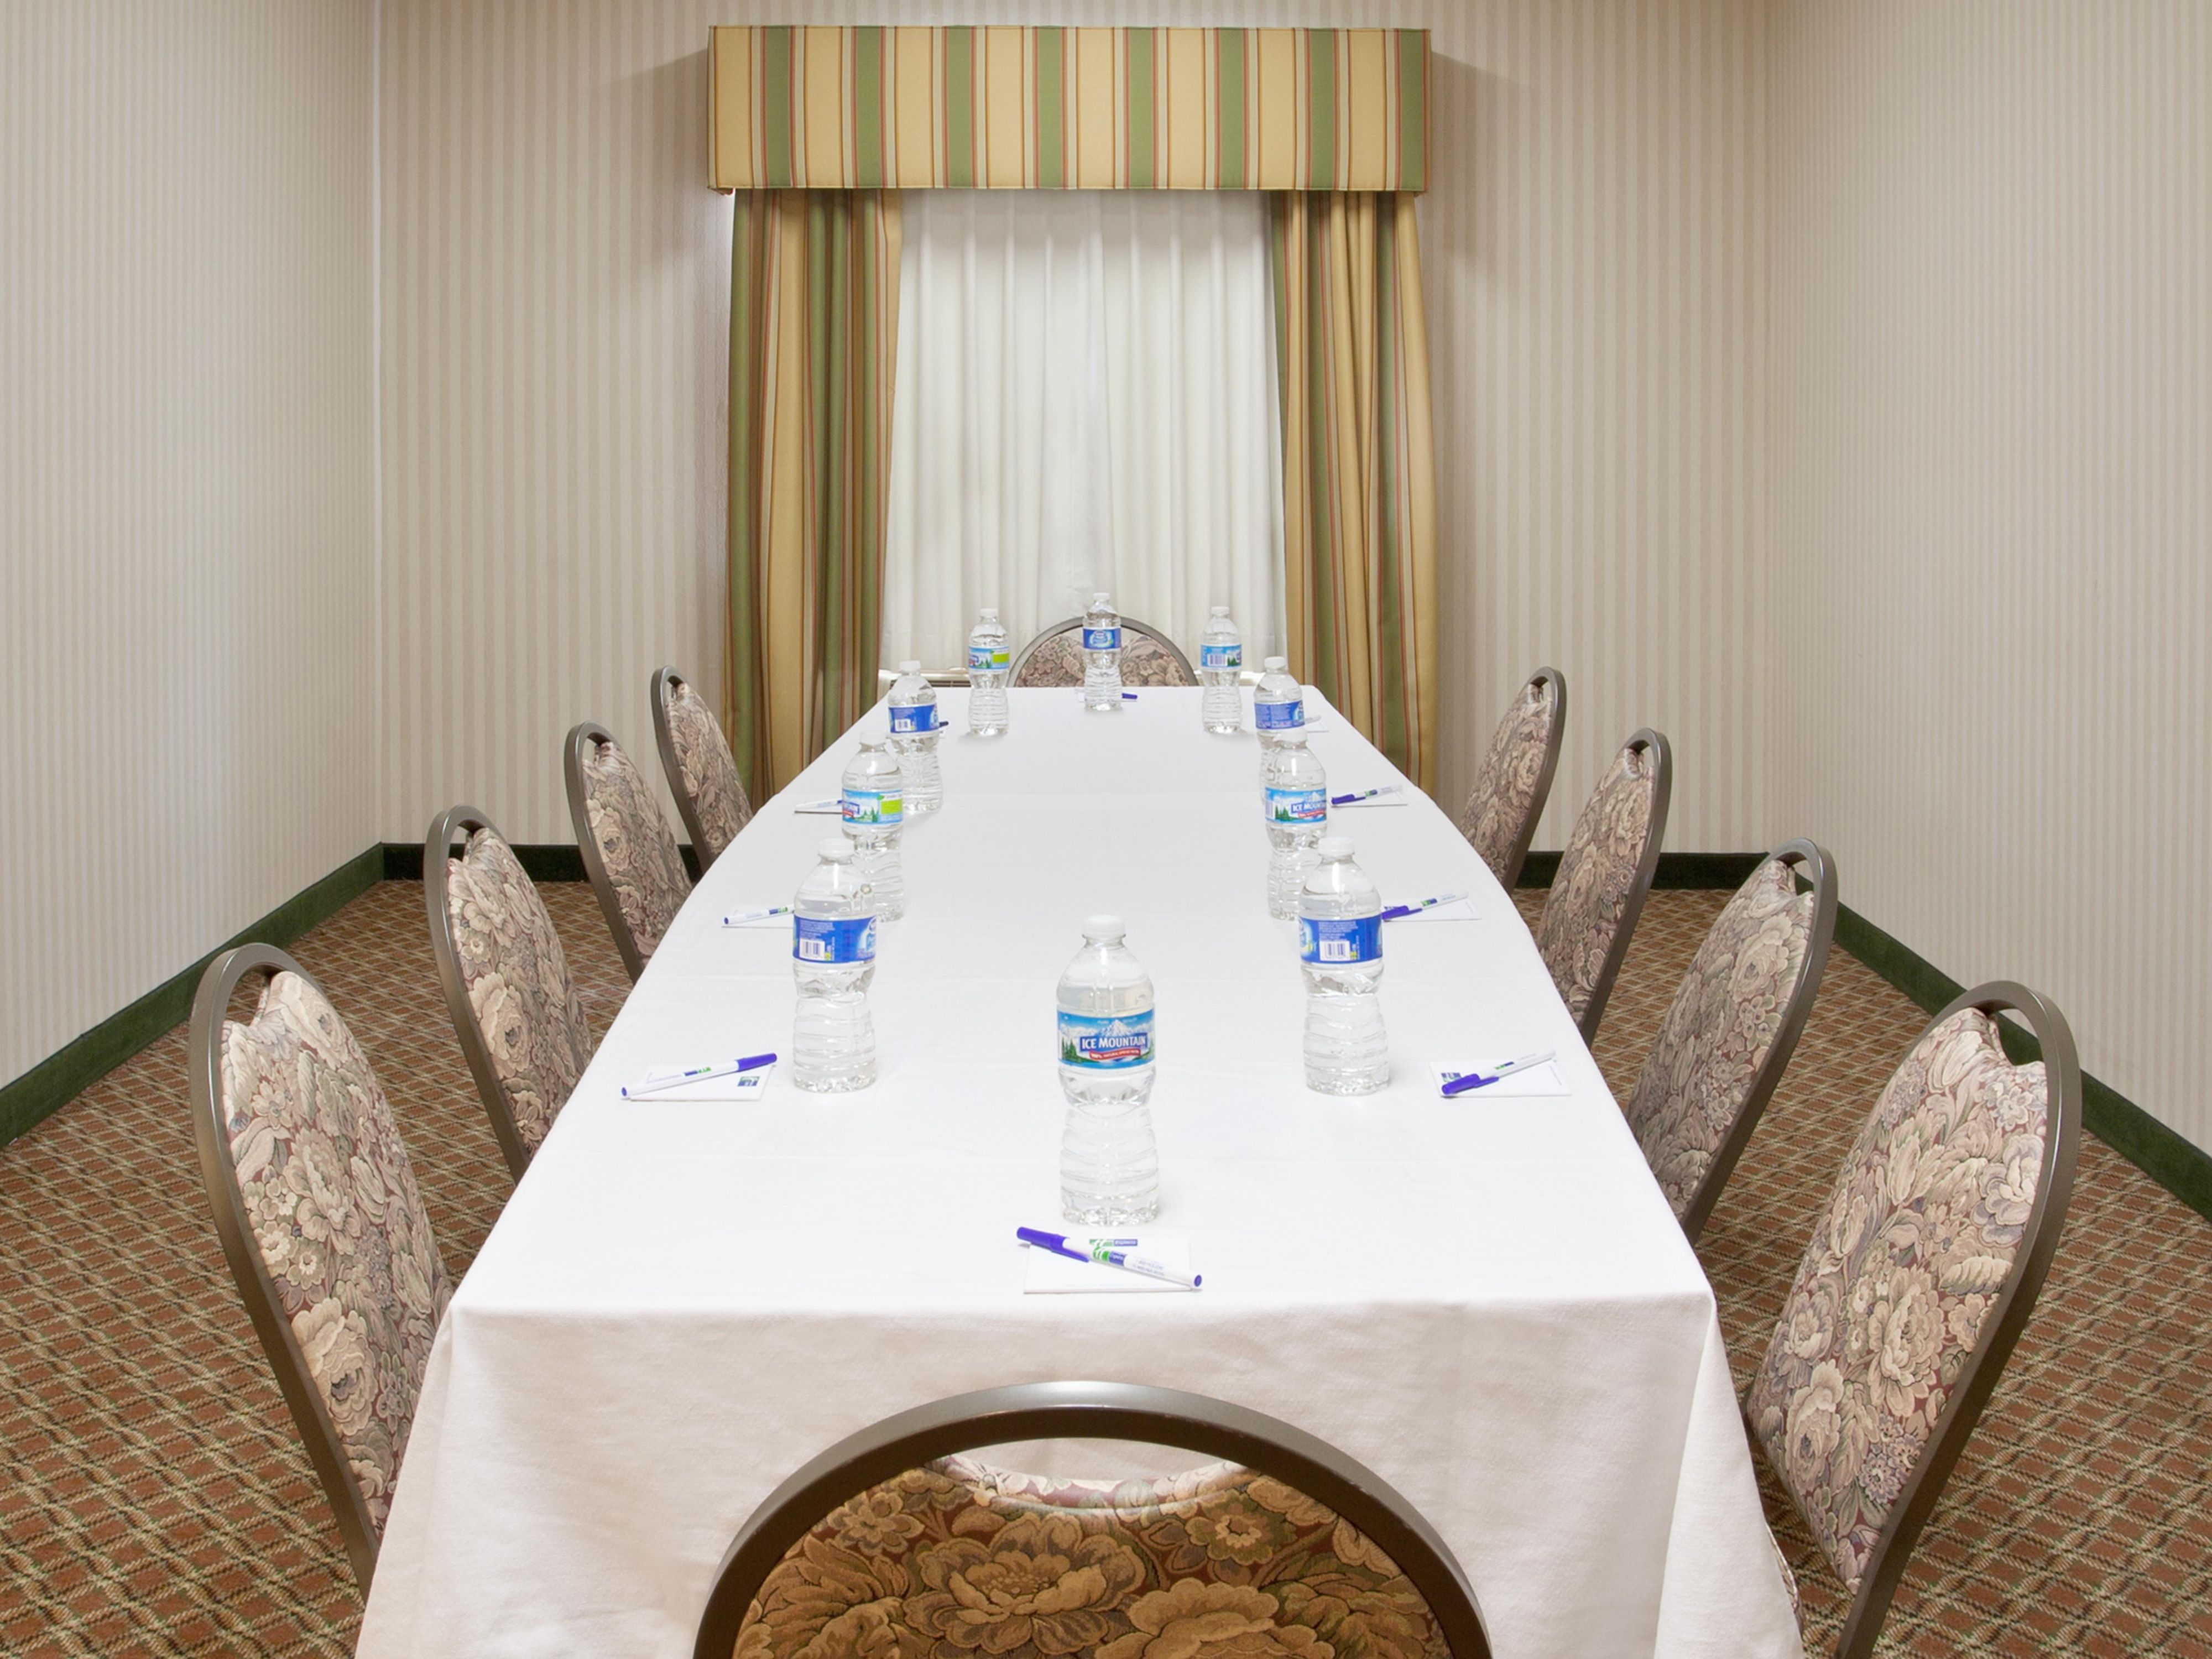 Enjoy a private get together in our boardroom.